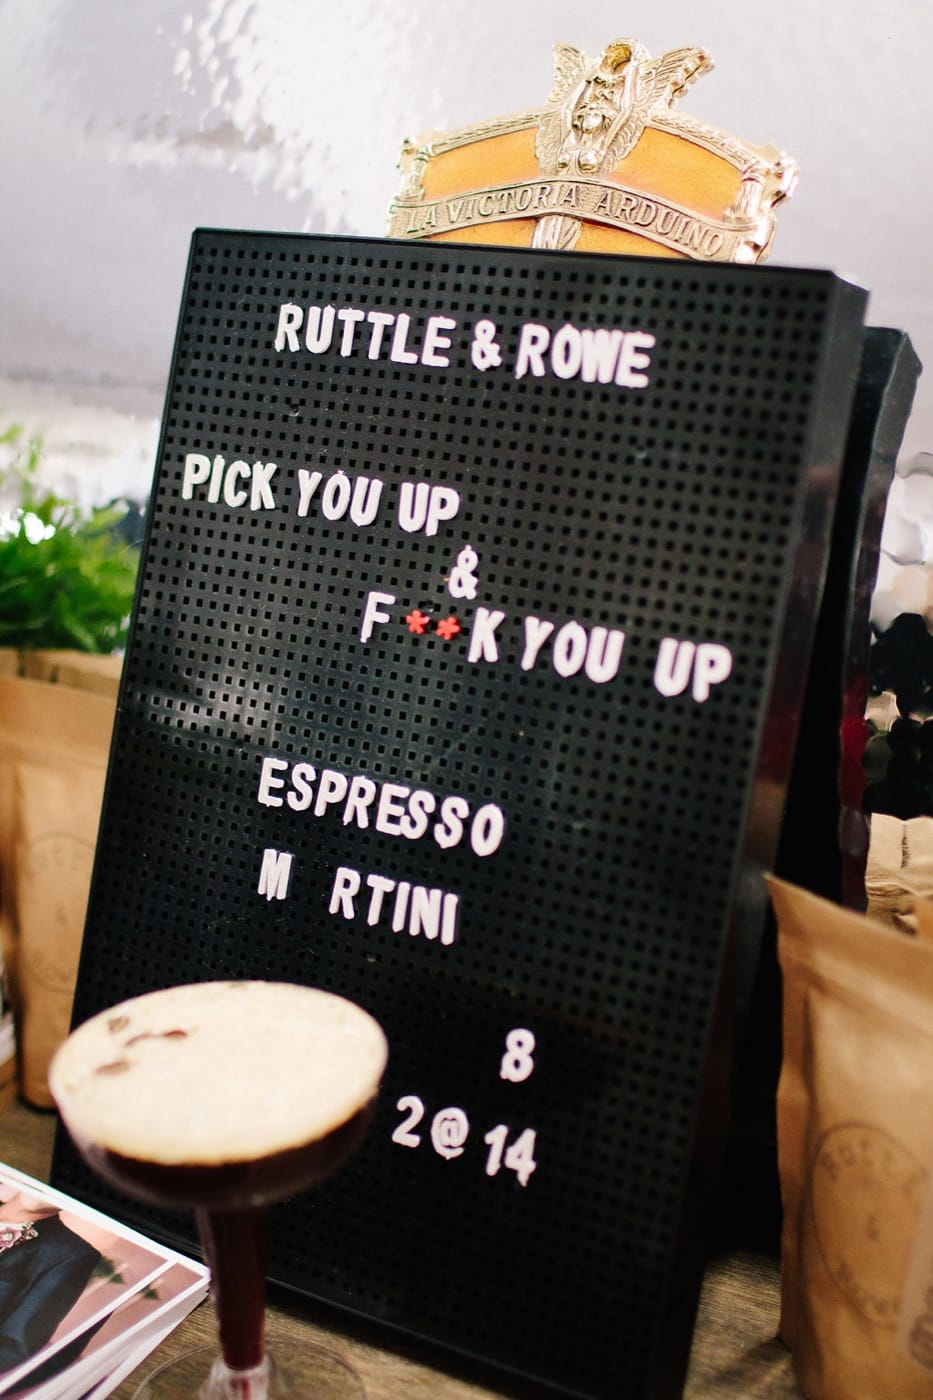 Feast-It-Ruttle-and-Rowe-Mobile-Coffee-Van-Street-Food-Espresso-Martinis-Speciality-Coffee-Event-Catering-Wedding-Catering-Book-Now-seven